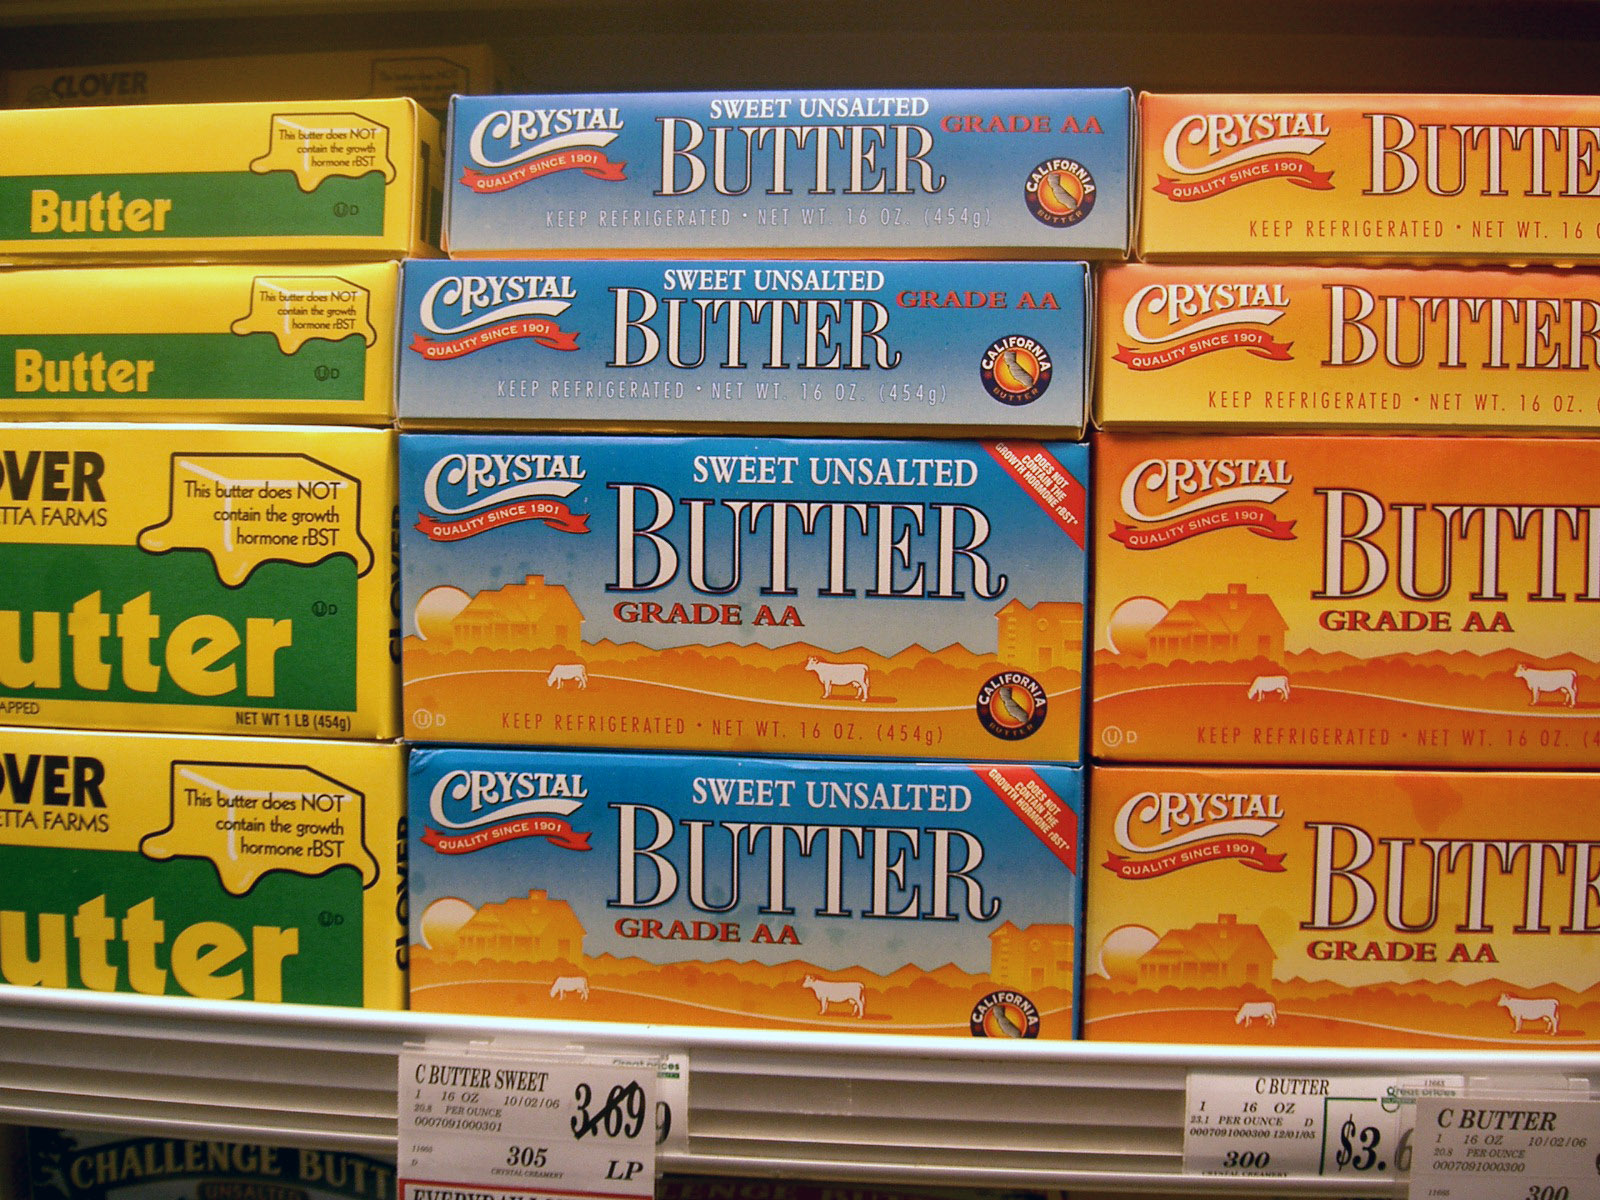 EC: The War on Butter Is Over, Butter Company Proclaims